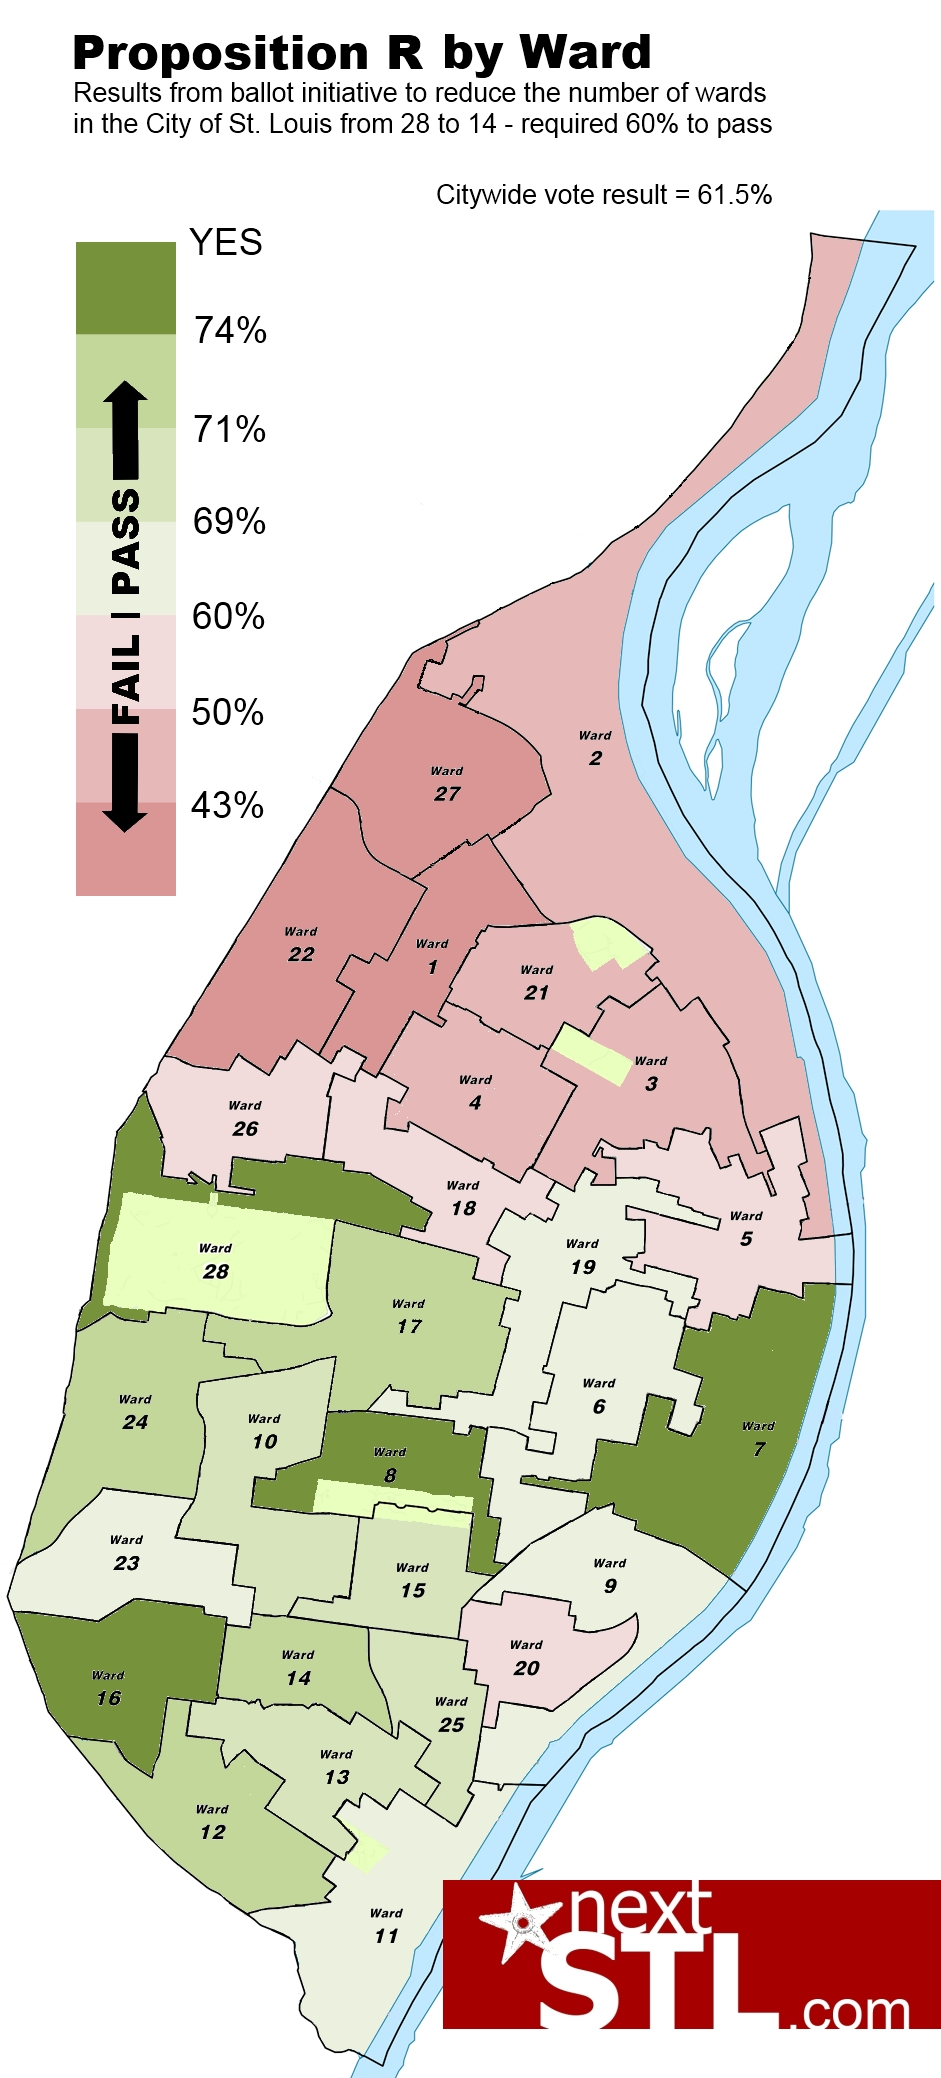 Understanding St. Louis: Proposition R by Ward